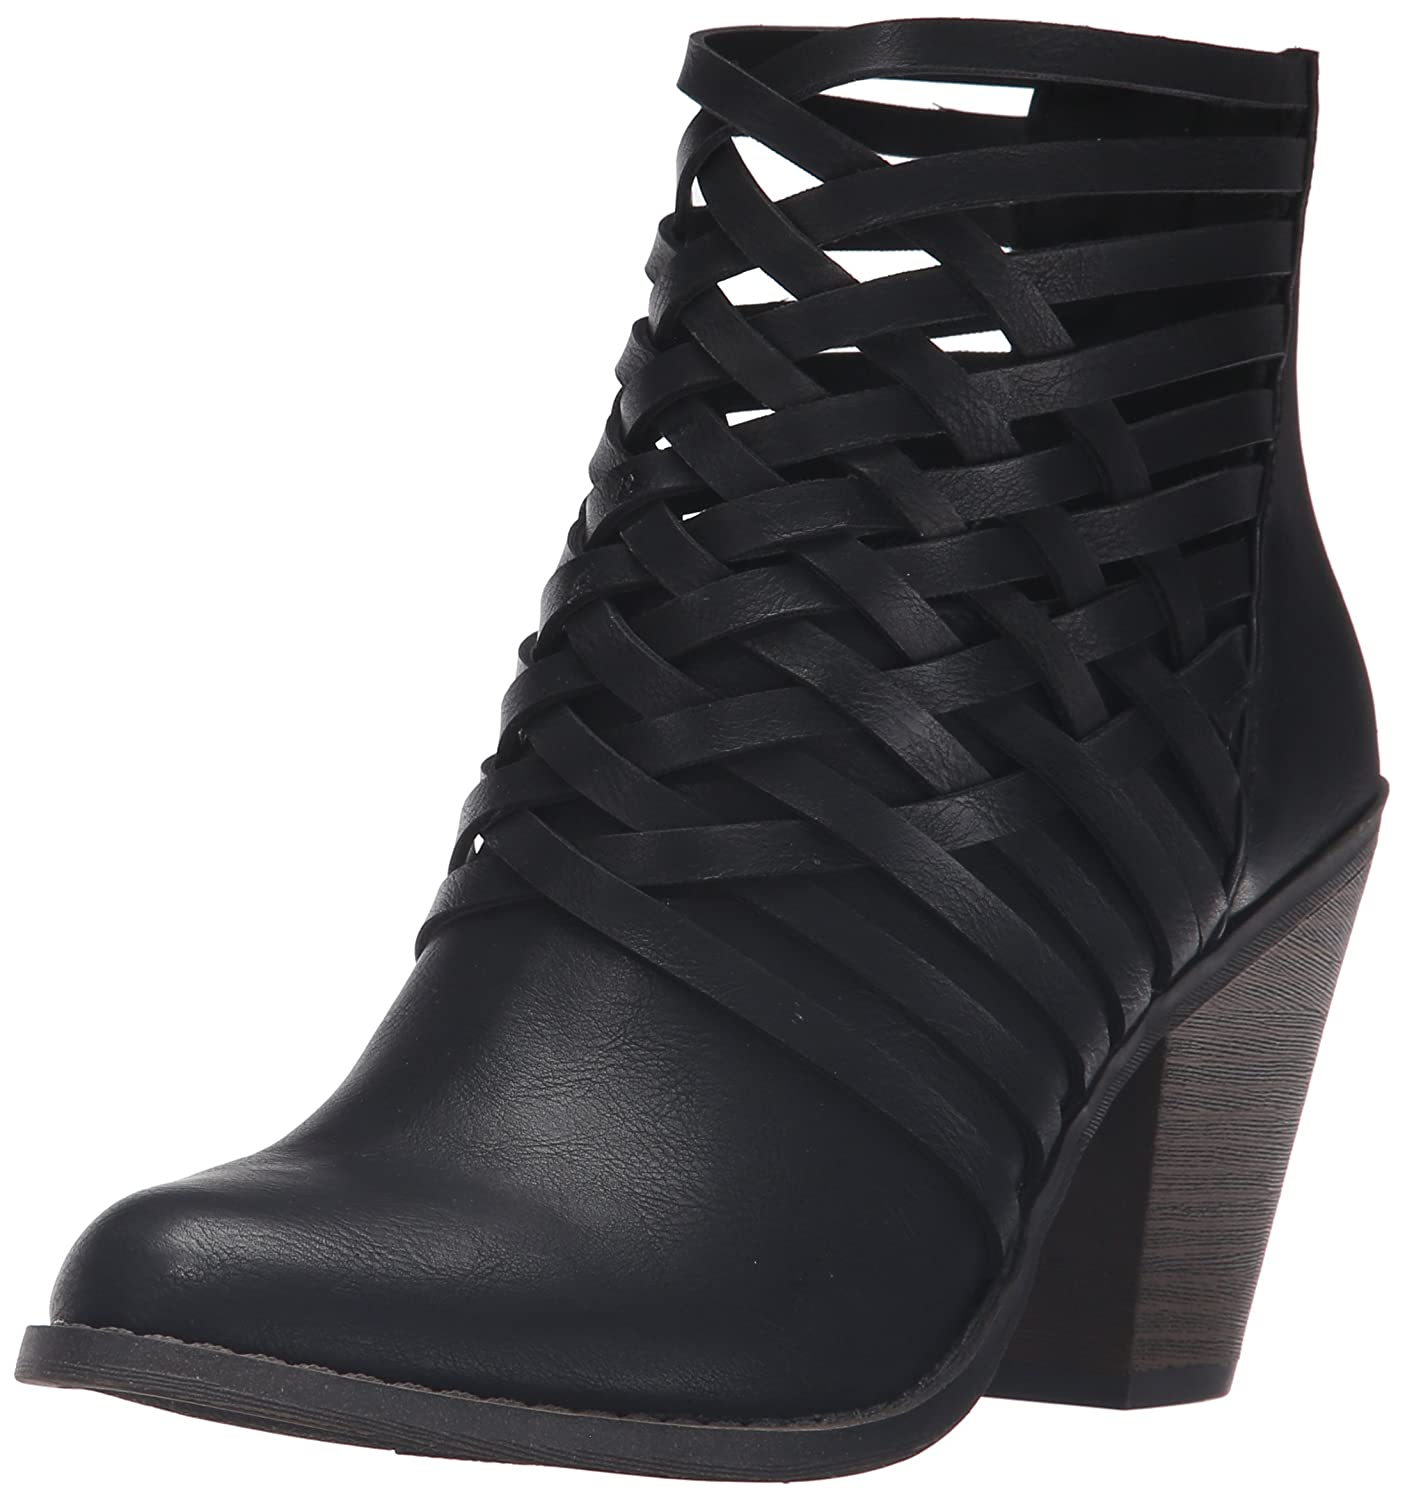 Black Fergalicious Women's Weever Ankle Boot